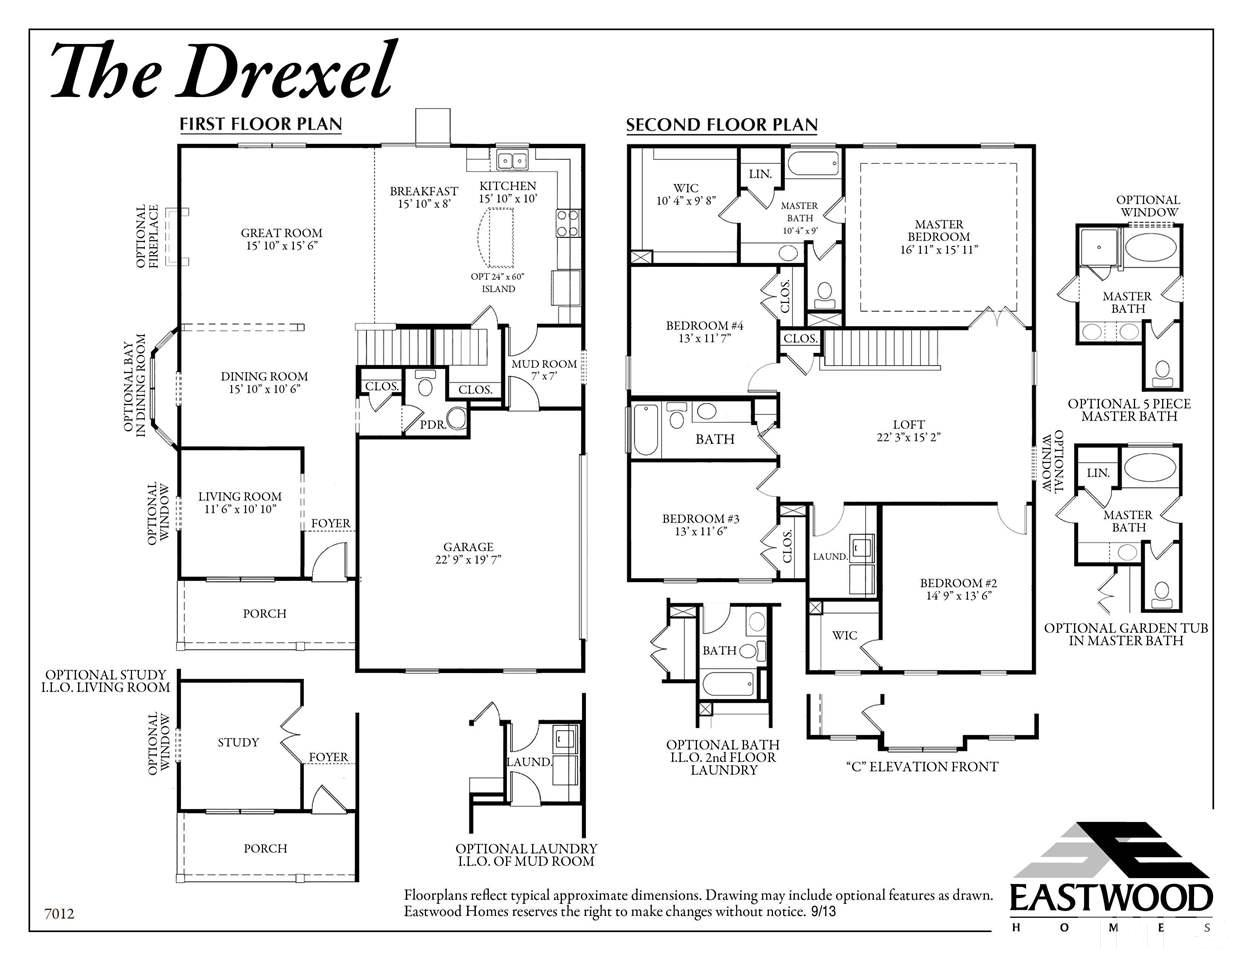 Eastwood Homes Drexel Floor Plan Home Design And Style